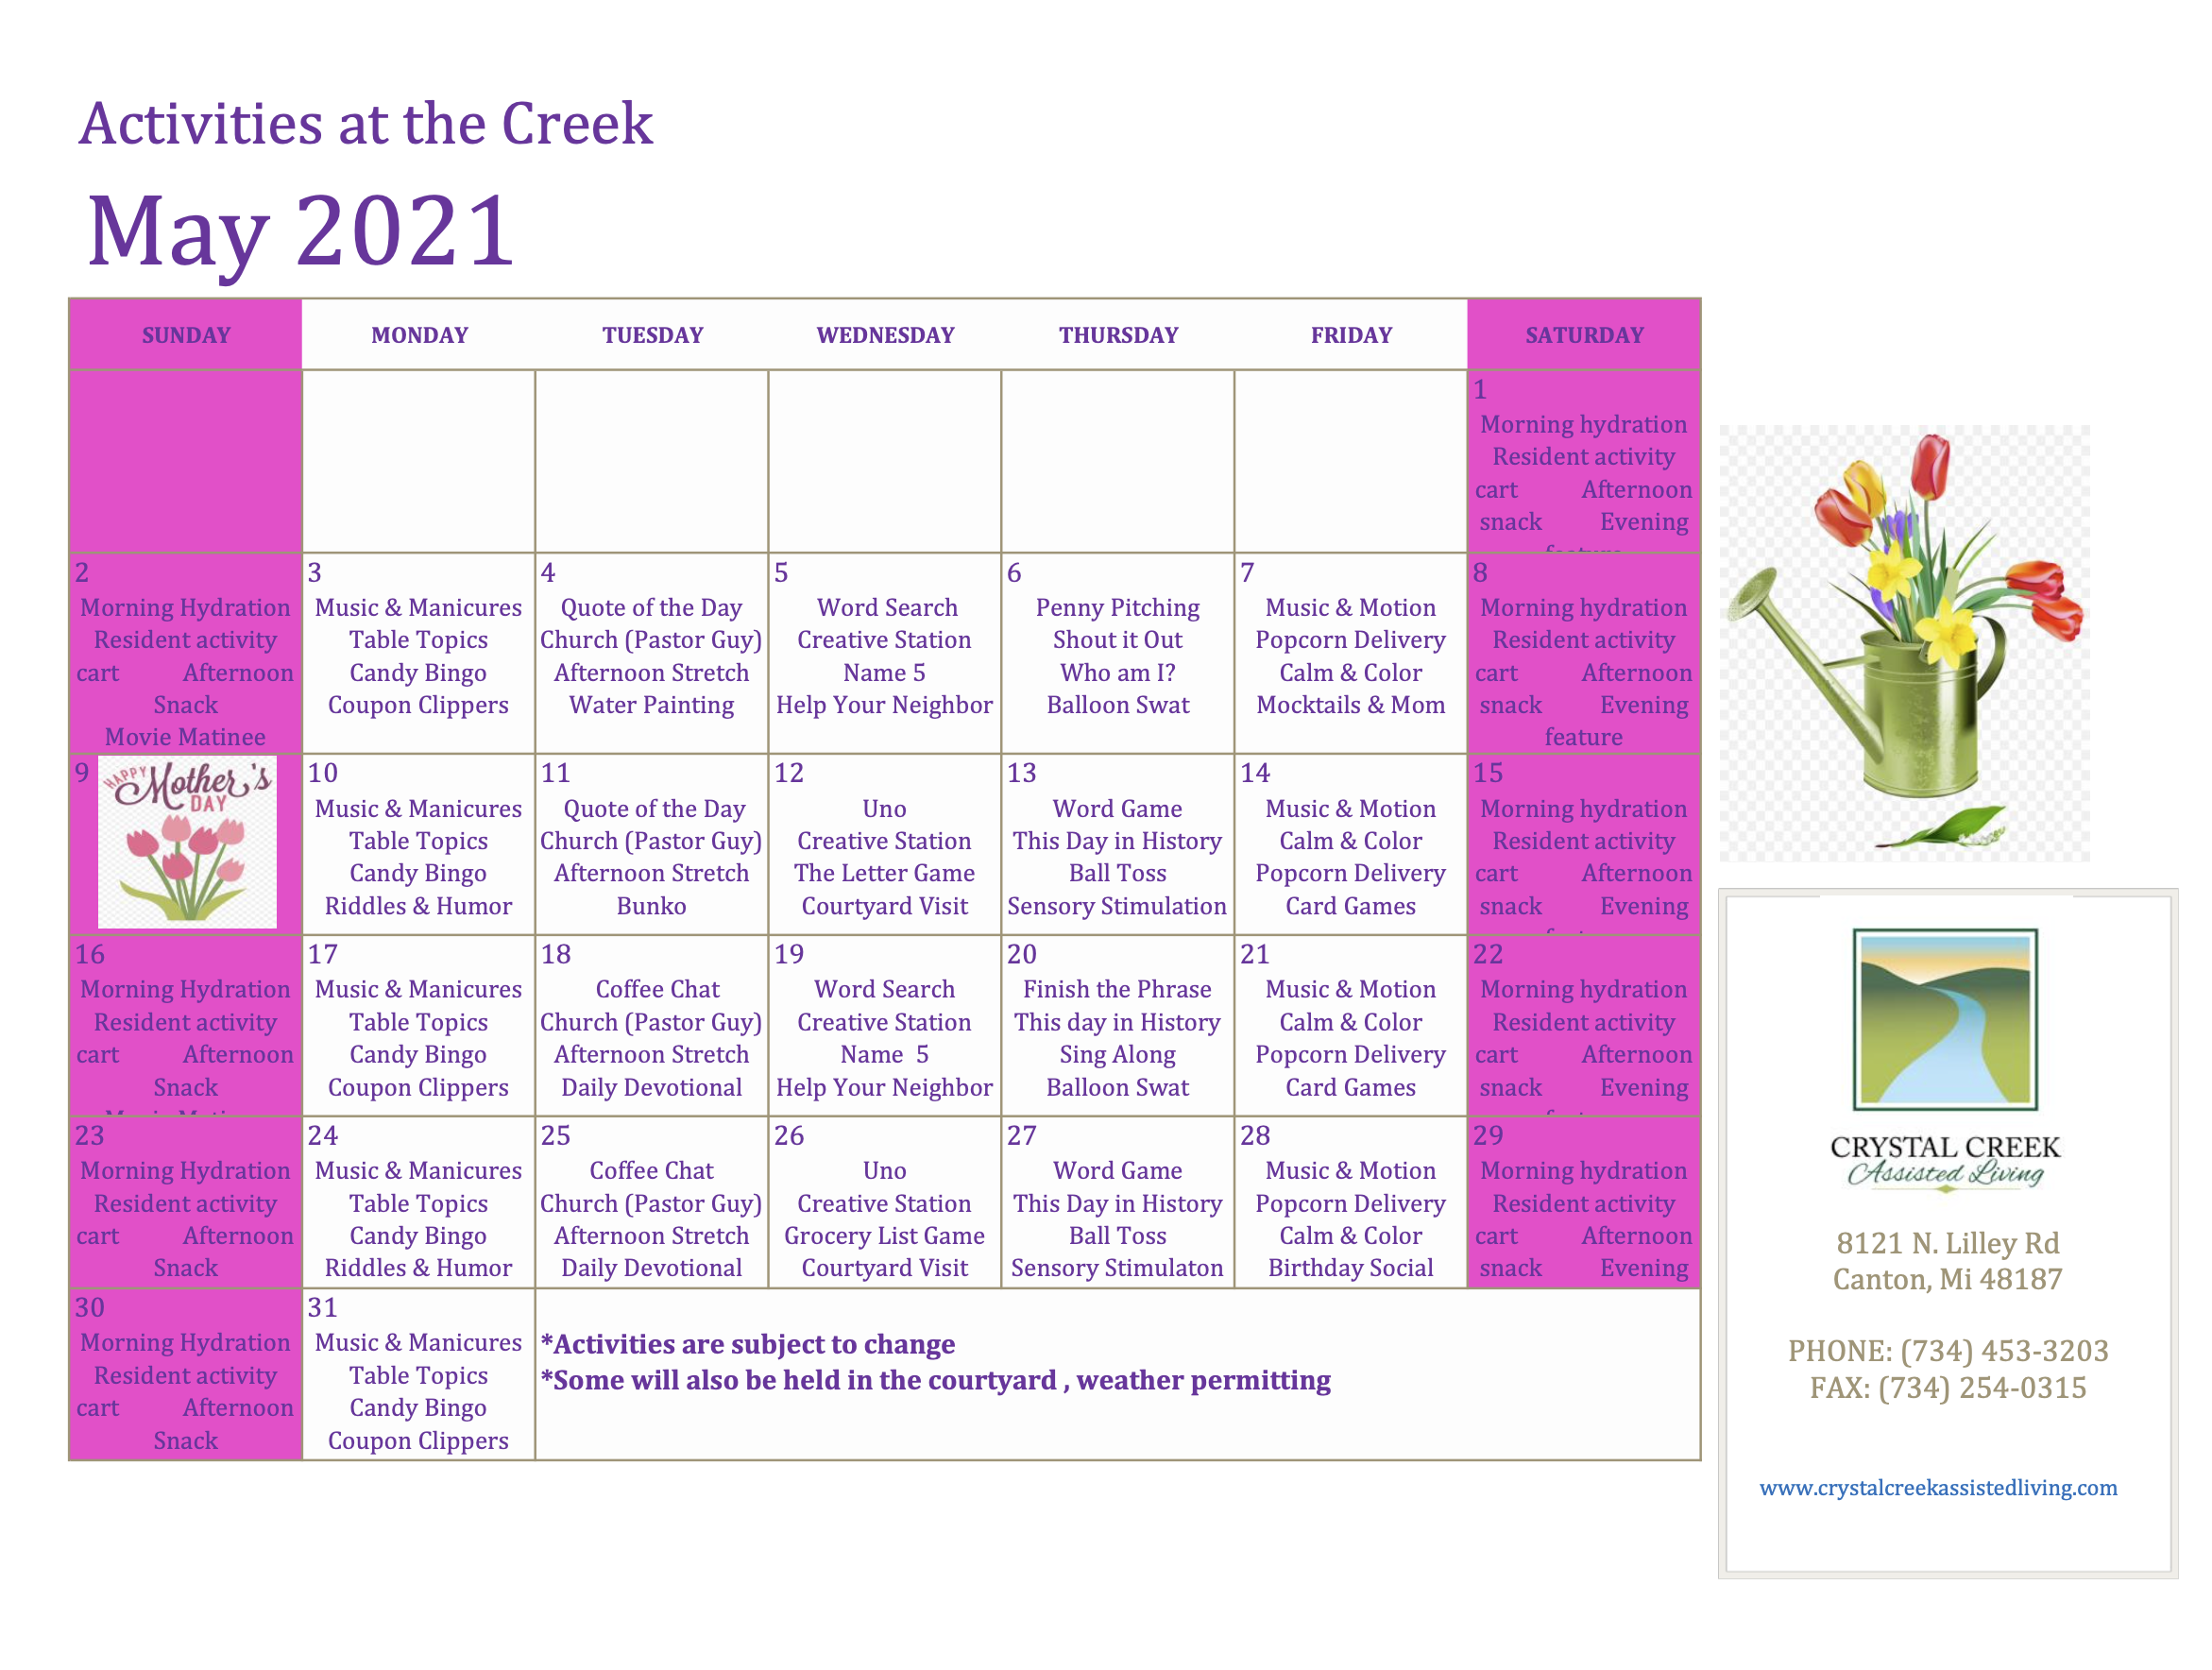 Crystal Creek Assisted Living And Memory Care May 2021 Calendar